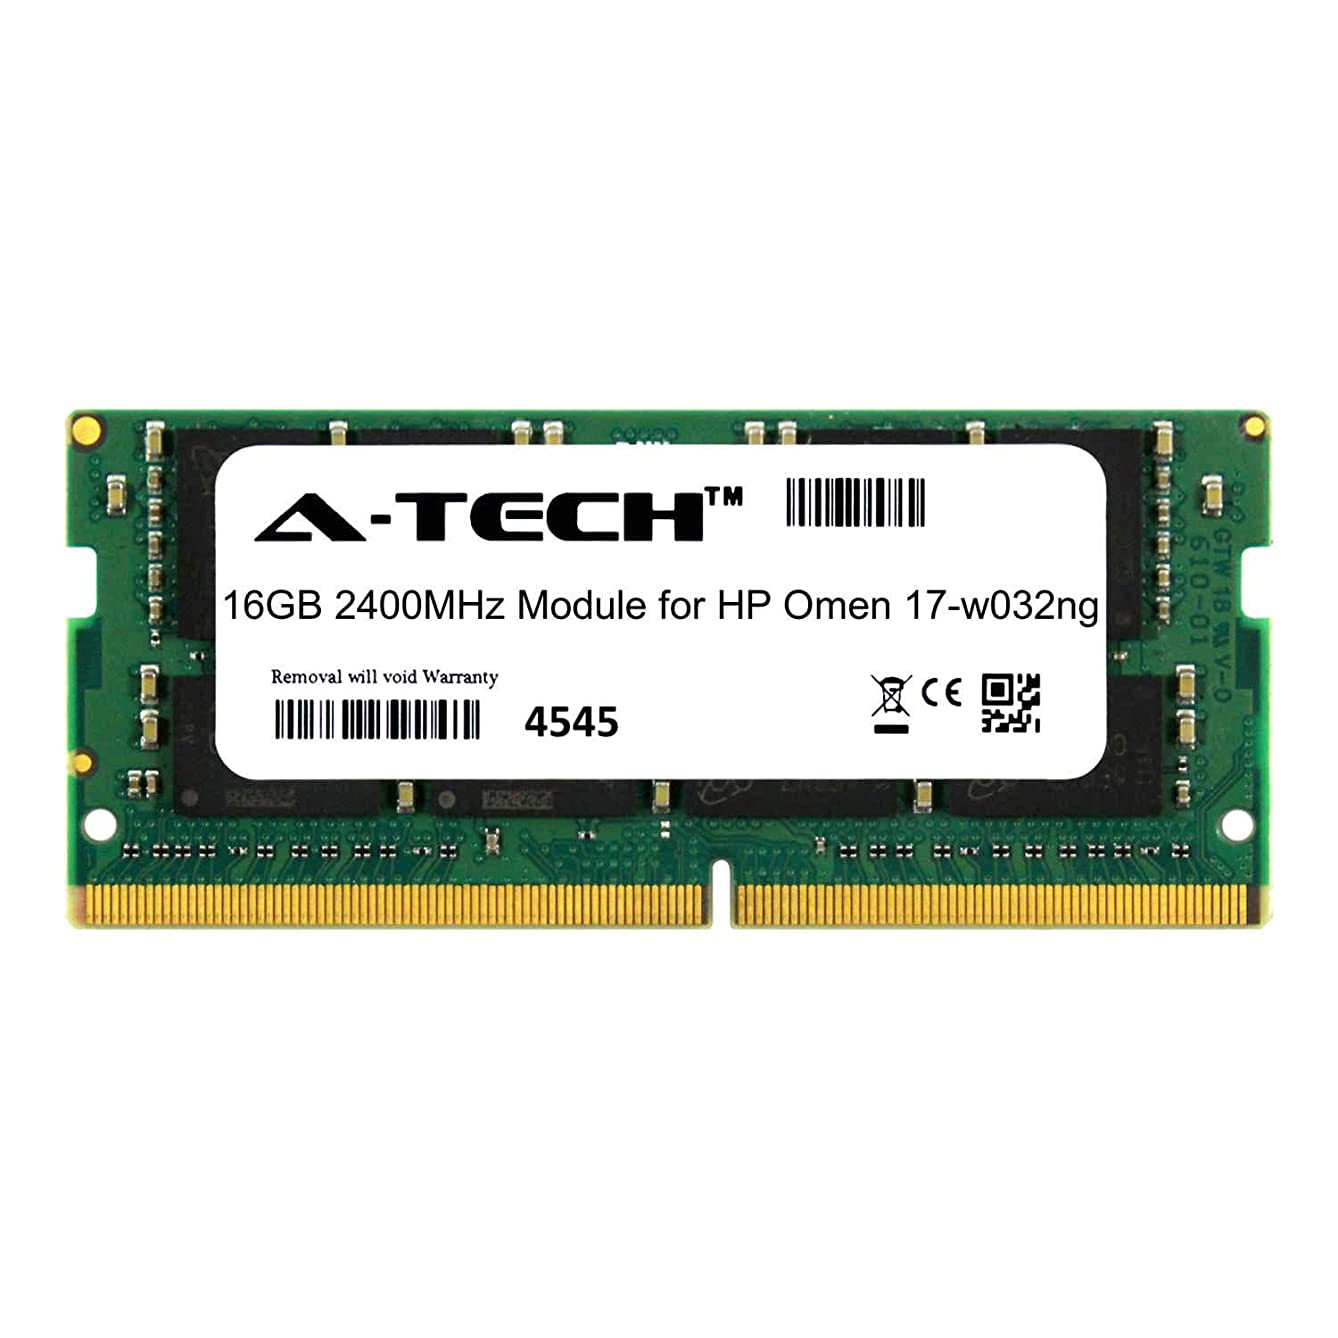 A-Tech 16GB Module for HP Omen 17-w032ng Laptop & Notebook Compatible DDR4 2400Mhz Memory Ram (ATMS281456A25831X1)